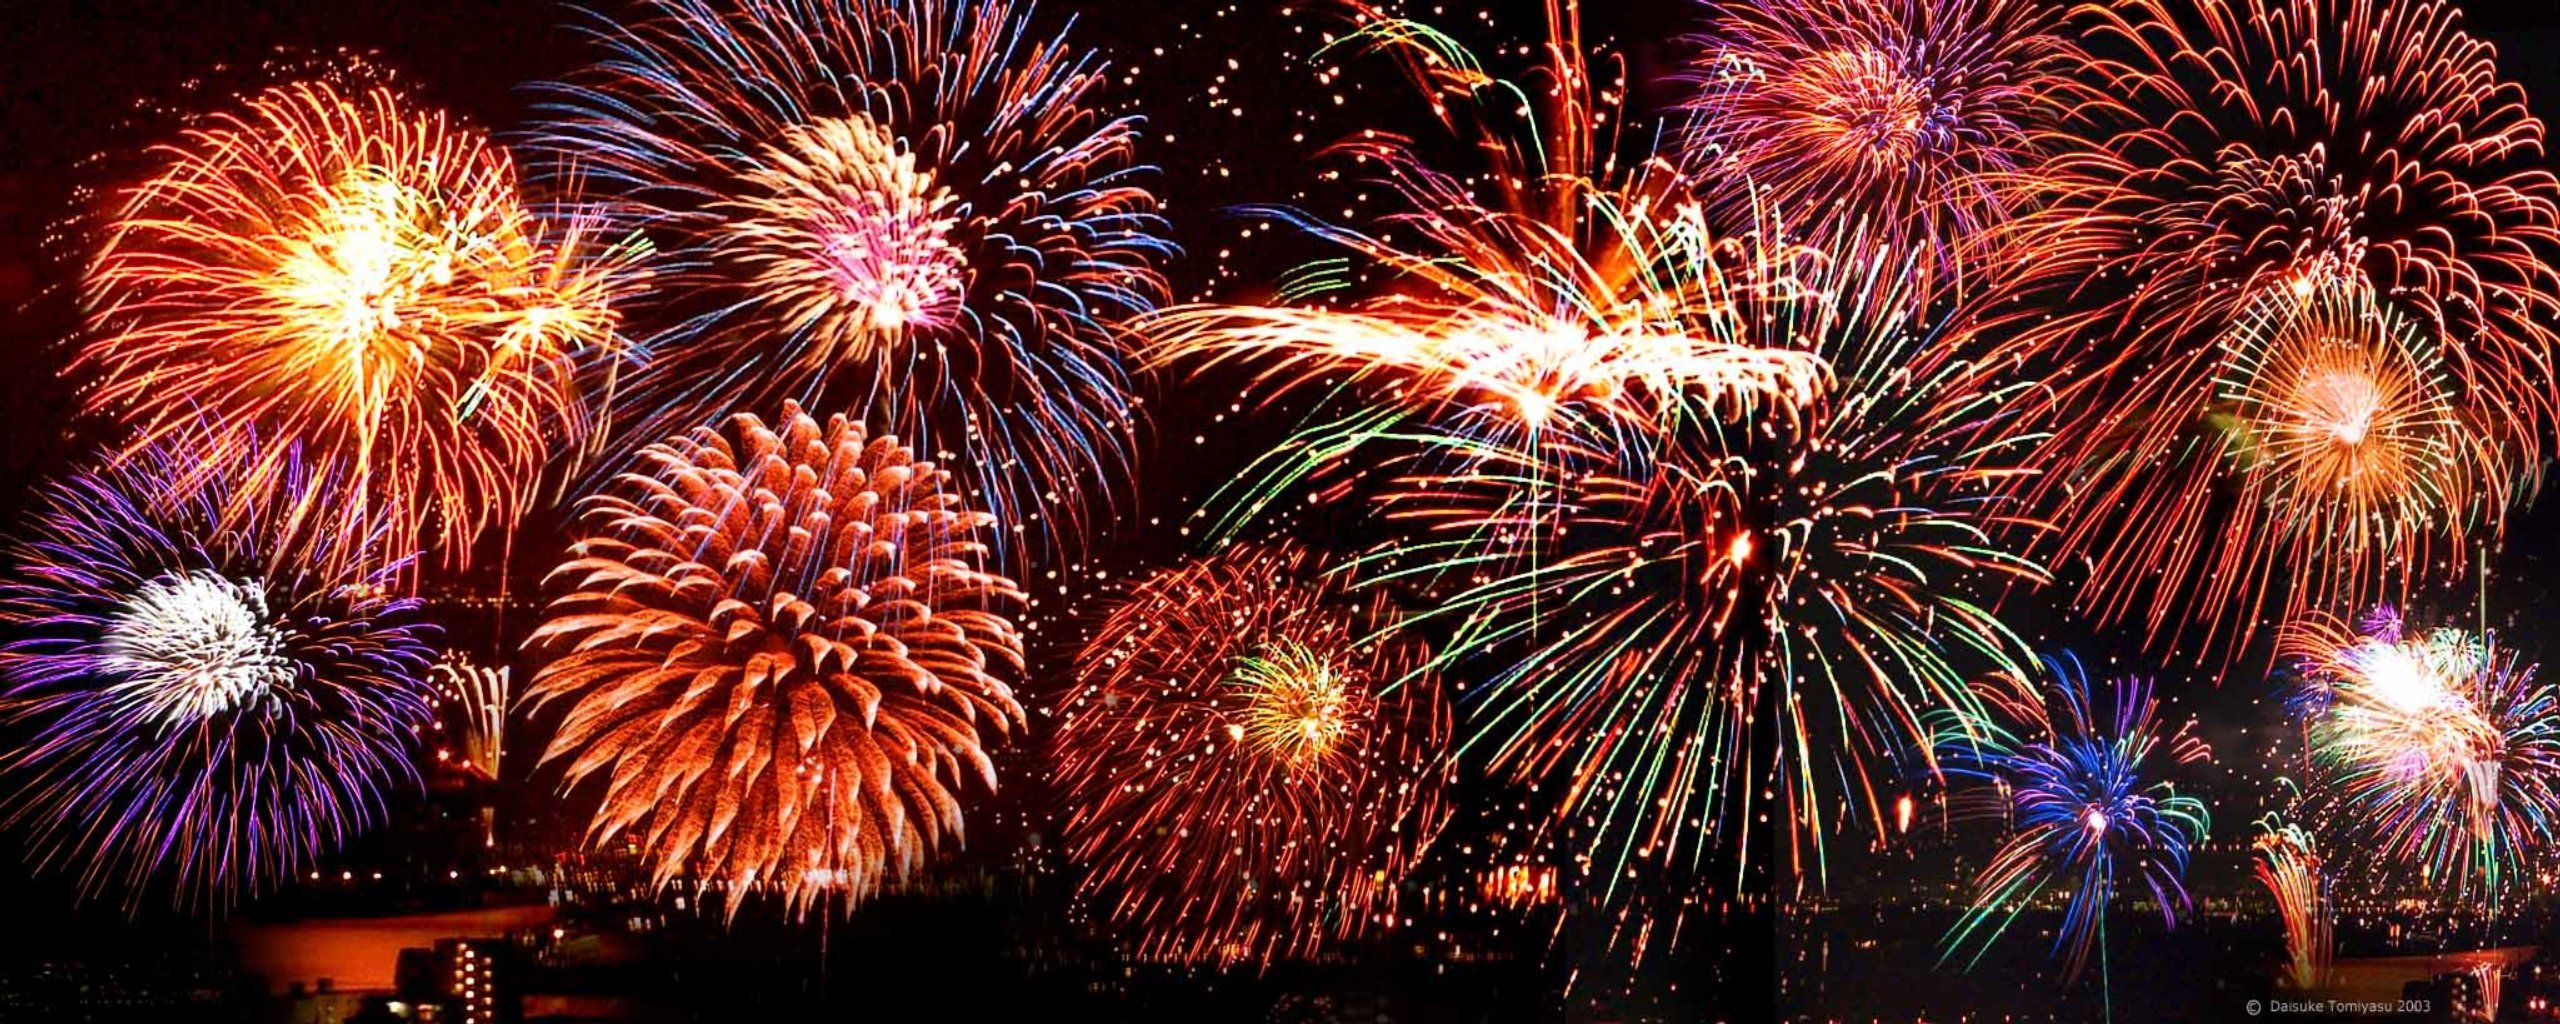 Join us for our Fireworks Display, Friday 7th November starting from 3:30pm